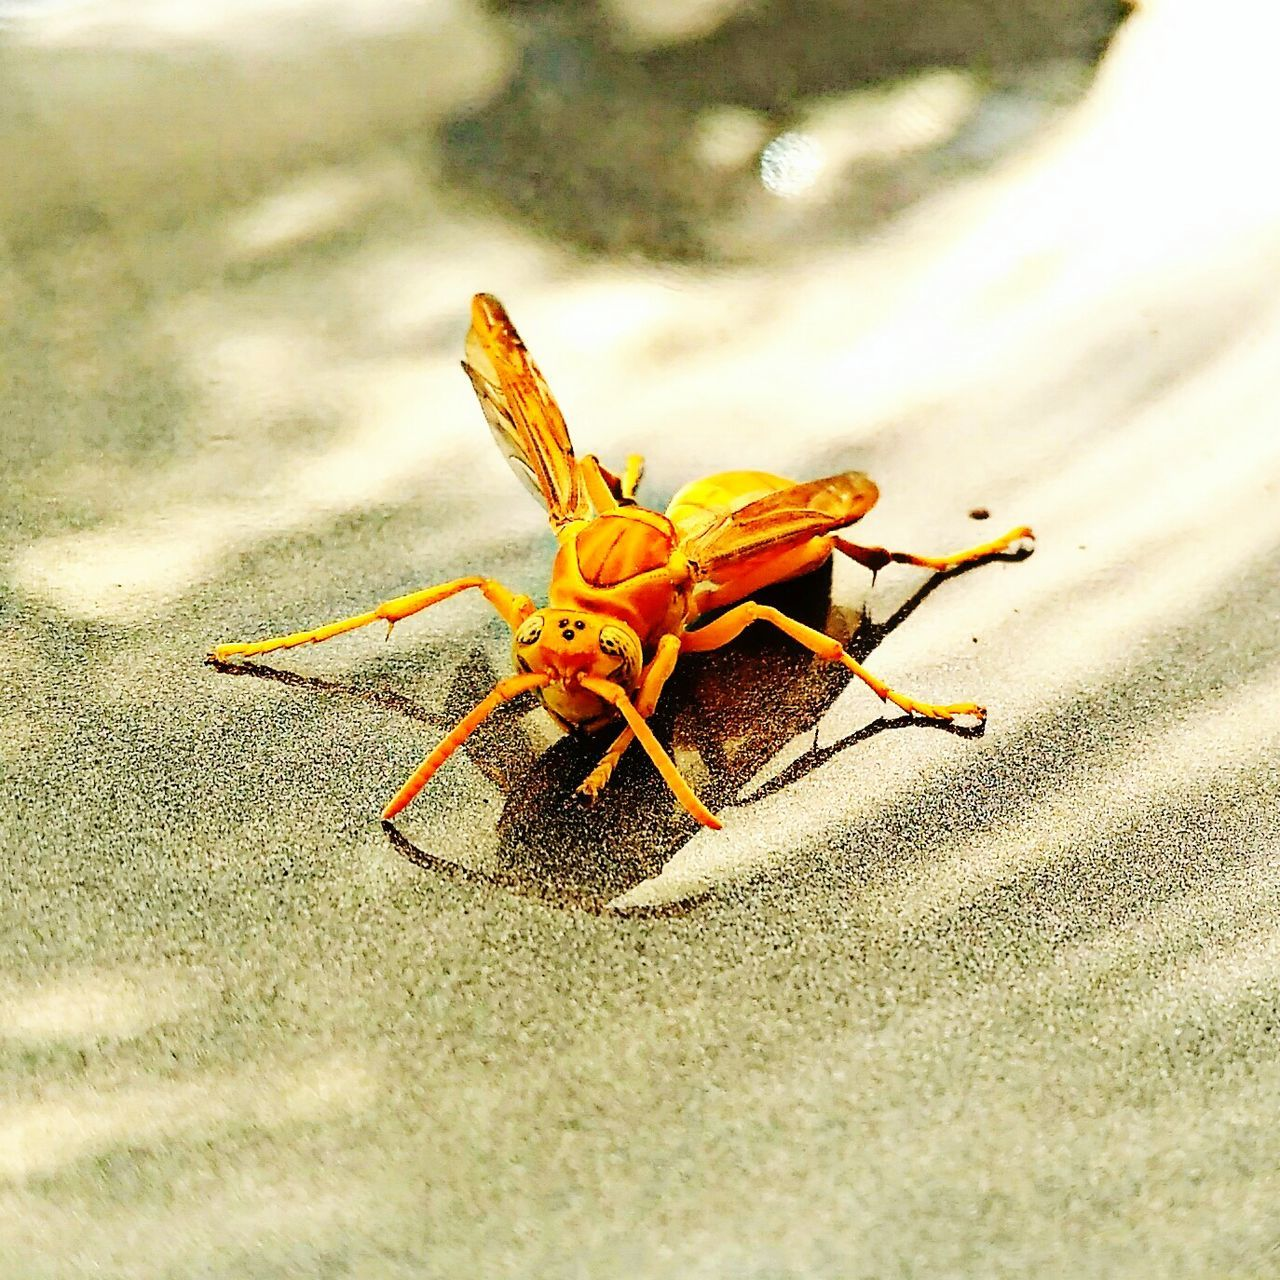 animal themes, animals in the wild, insect, one animal, day, no people, close-up, animal wildlife, outdoors, sunlight, sand, beach, nature, grasshopper